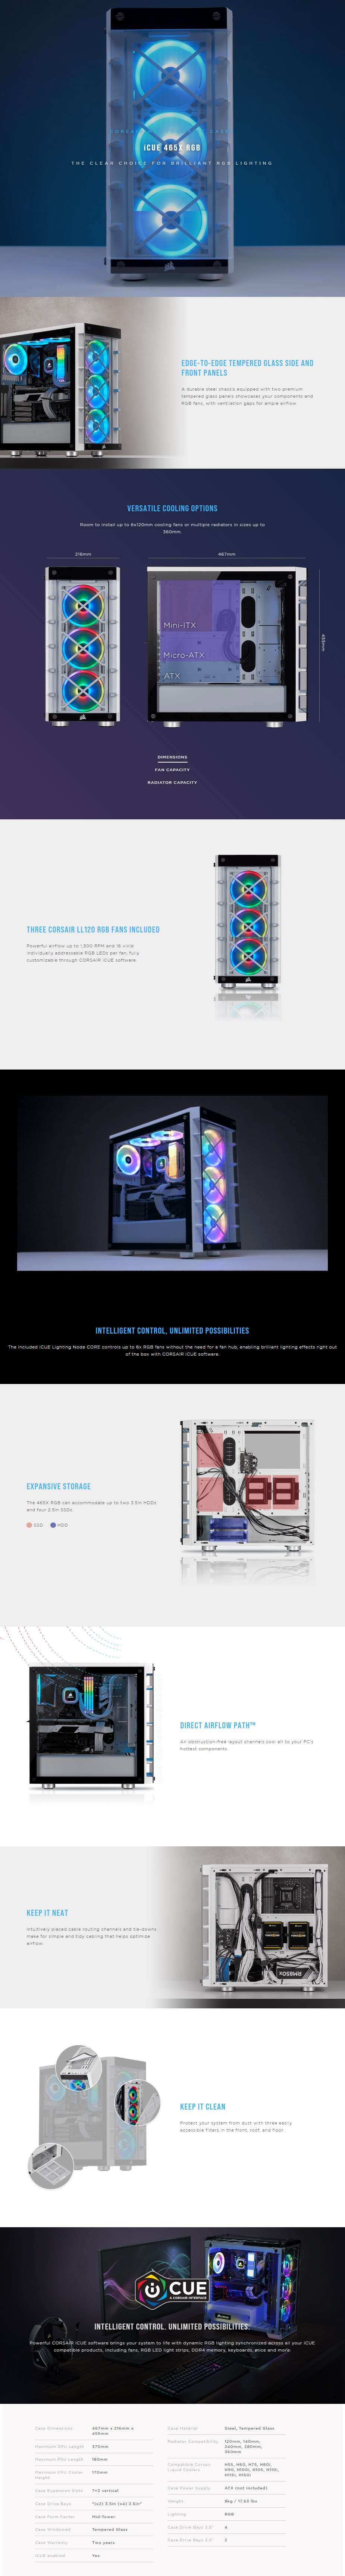 Corsair iCUE 465X RGB Tempered Glass ATX Mid-Tower Case - White - Overview 1